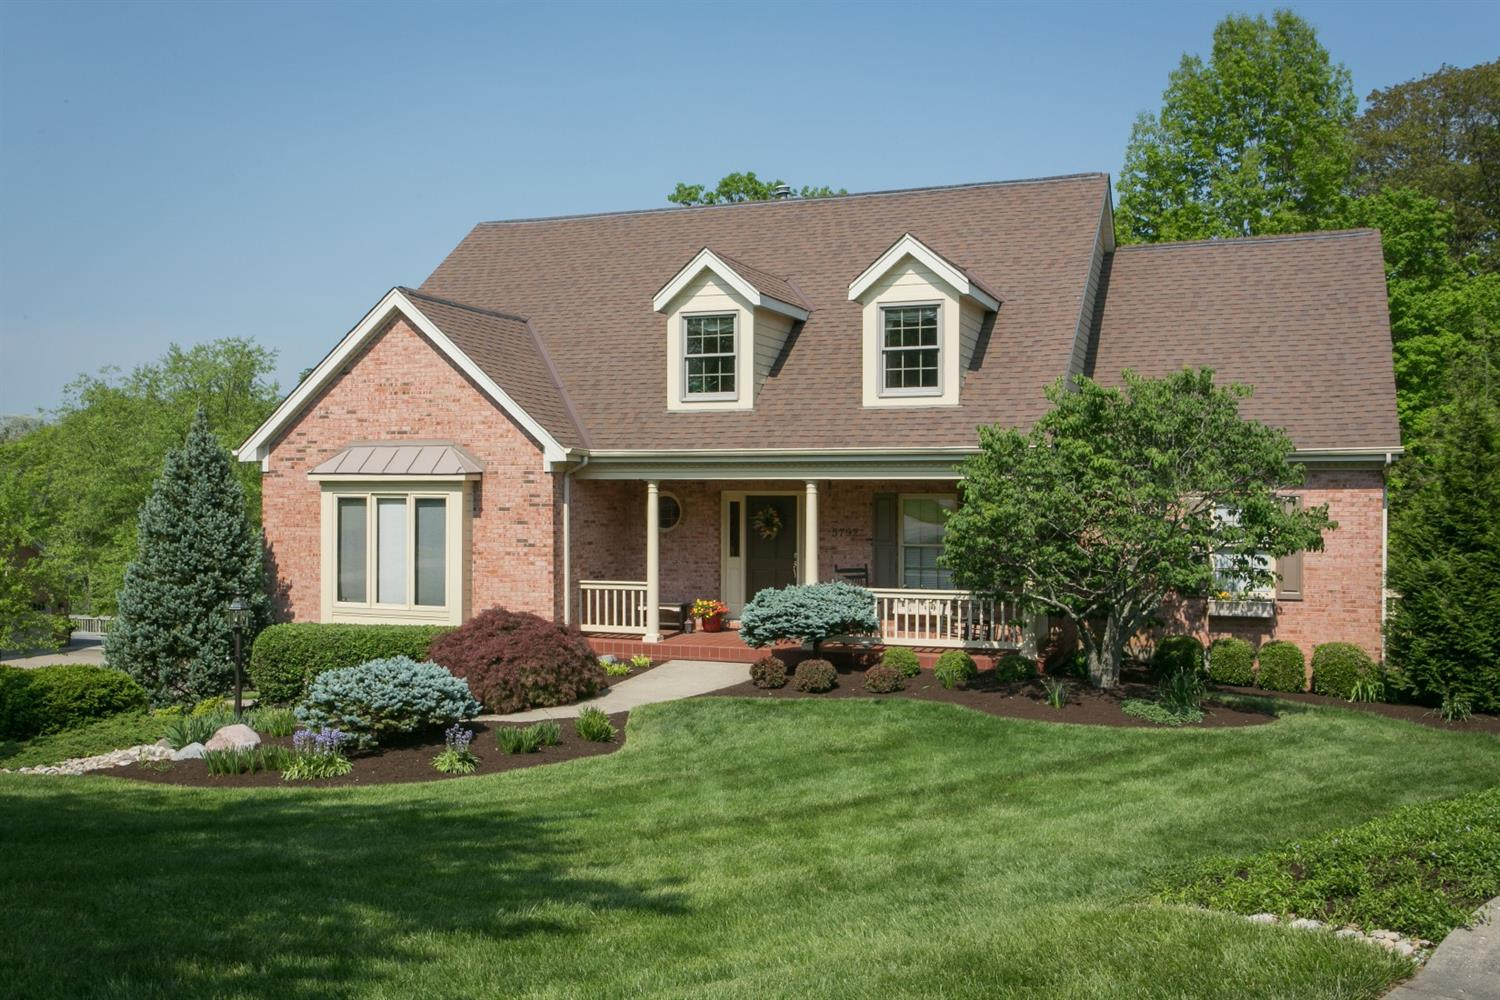 5792 Opengate Ct Monfort Hts., OH